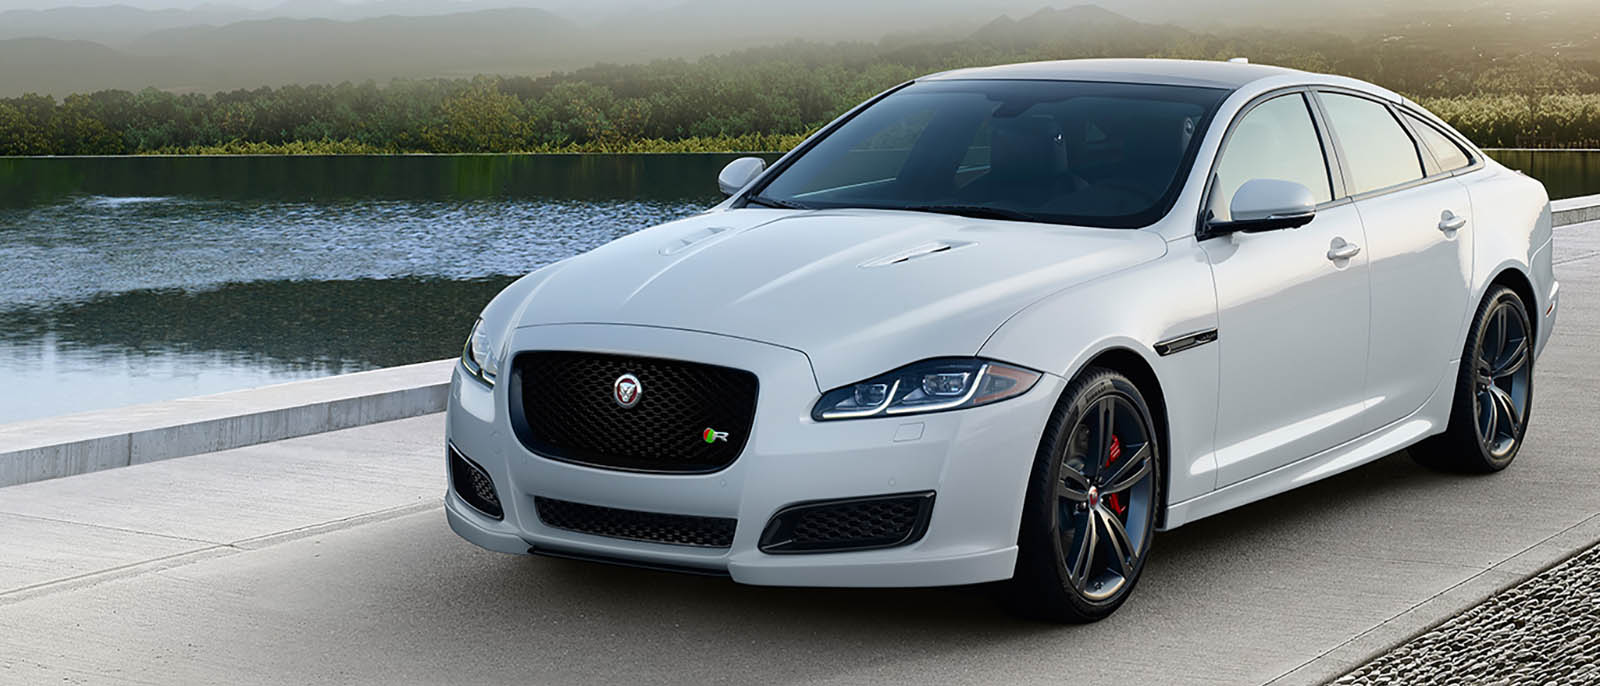 The 2017 Jaguar Xj Is Ready To Set Your Pulse Racing